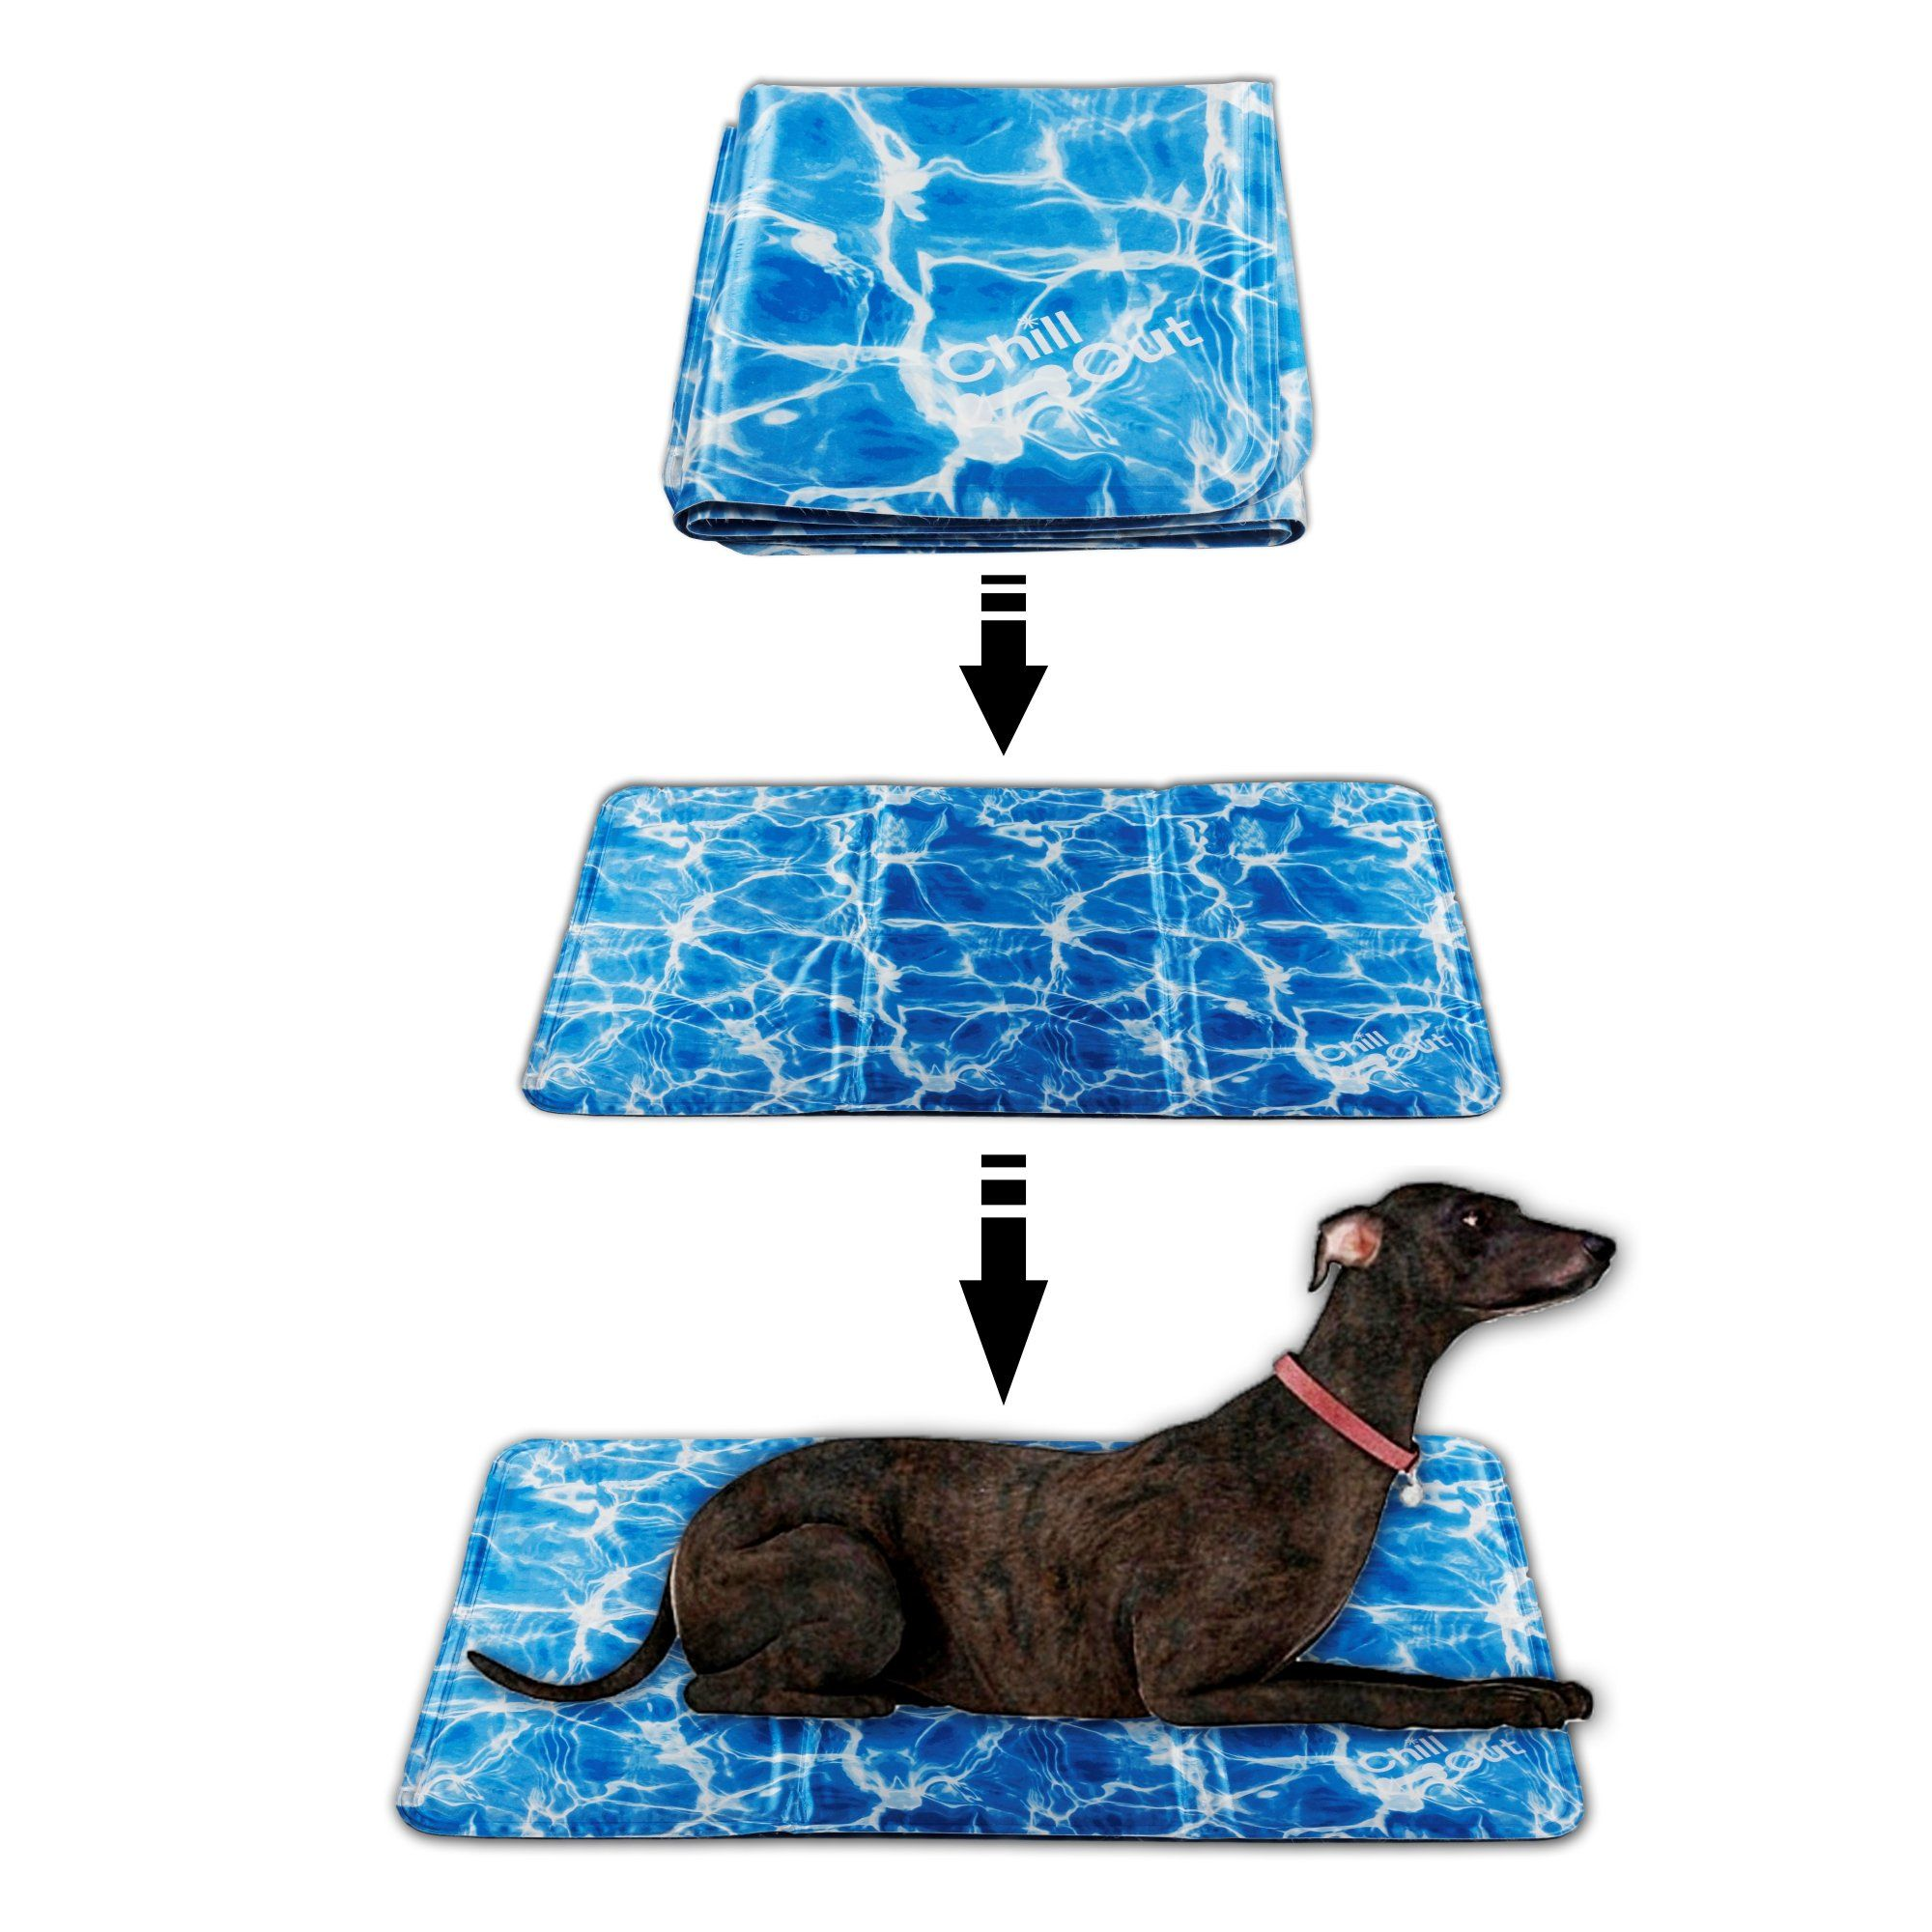 All For Paws Pet Cooling Mat Dog Cooling Pad Self Cooling Cushion Keeping Pets Cool Summer Sleeping Mat M Read More A Dog Cooling Pad Pet Cooling Mat Cat Bed